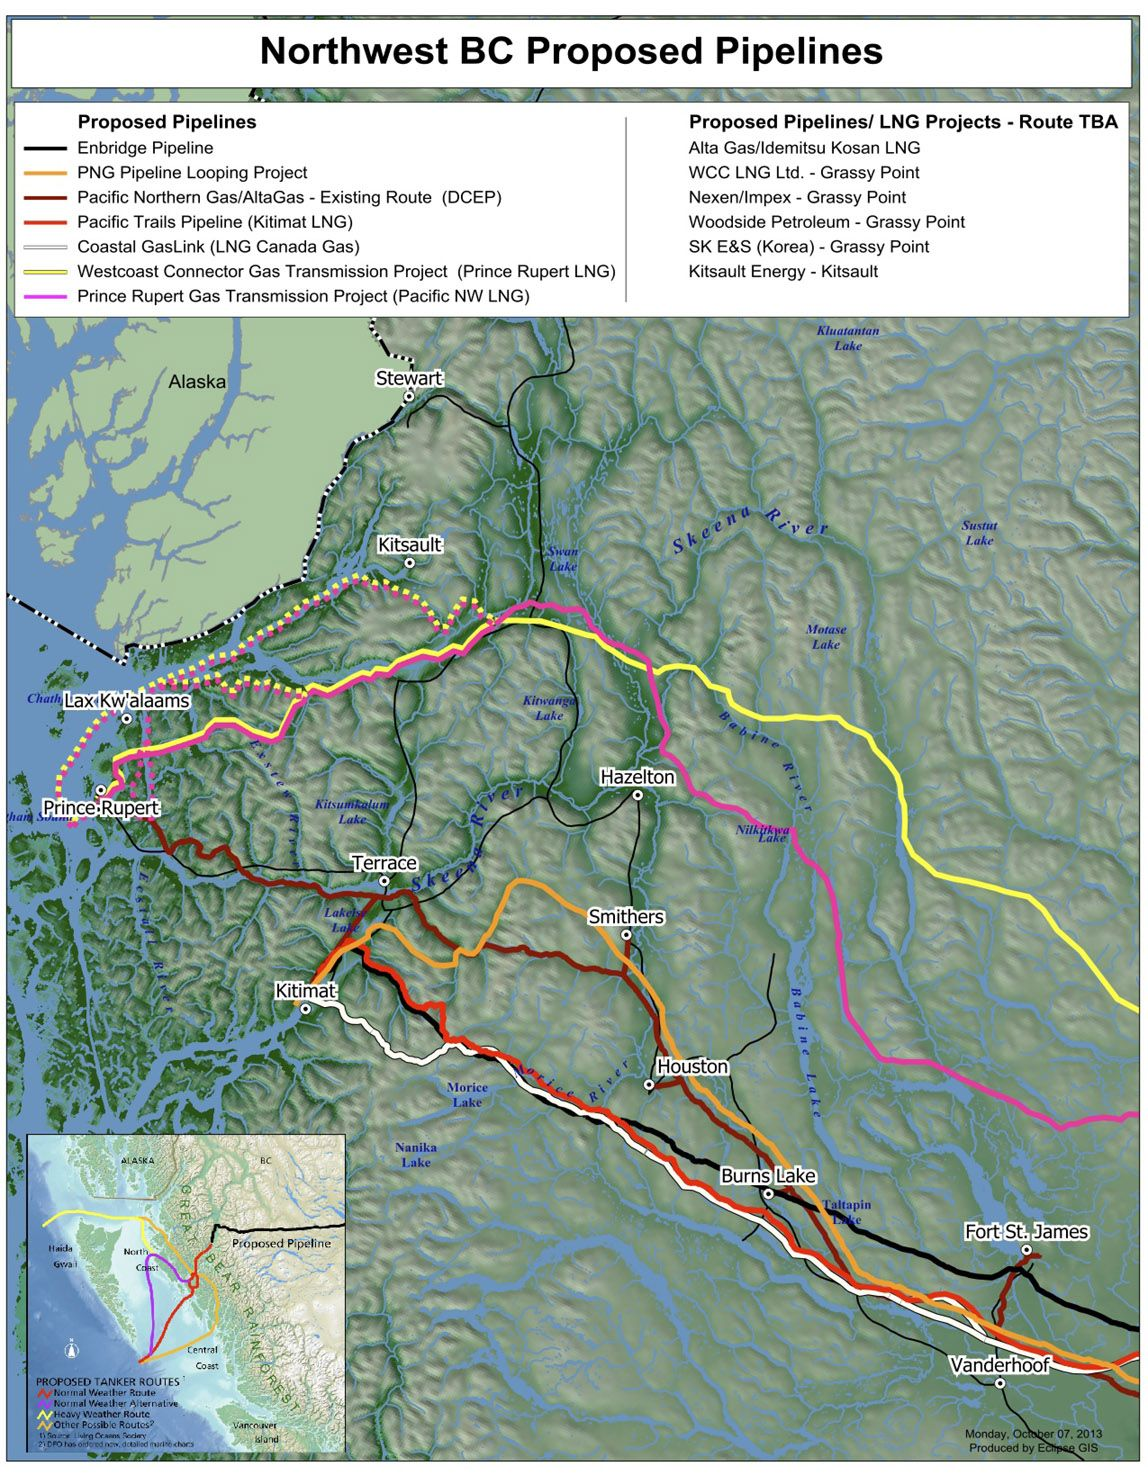 Map shows multiple proposed oil, gas pipelines for BC